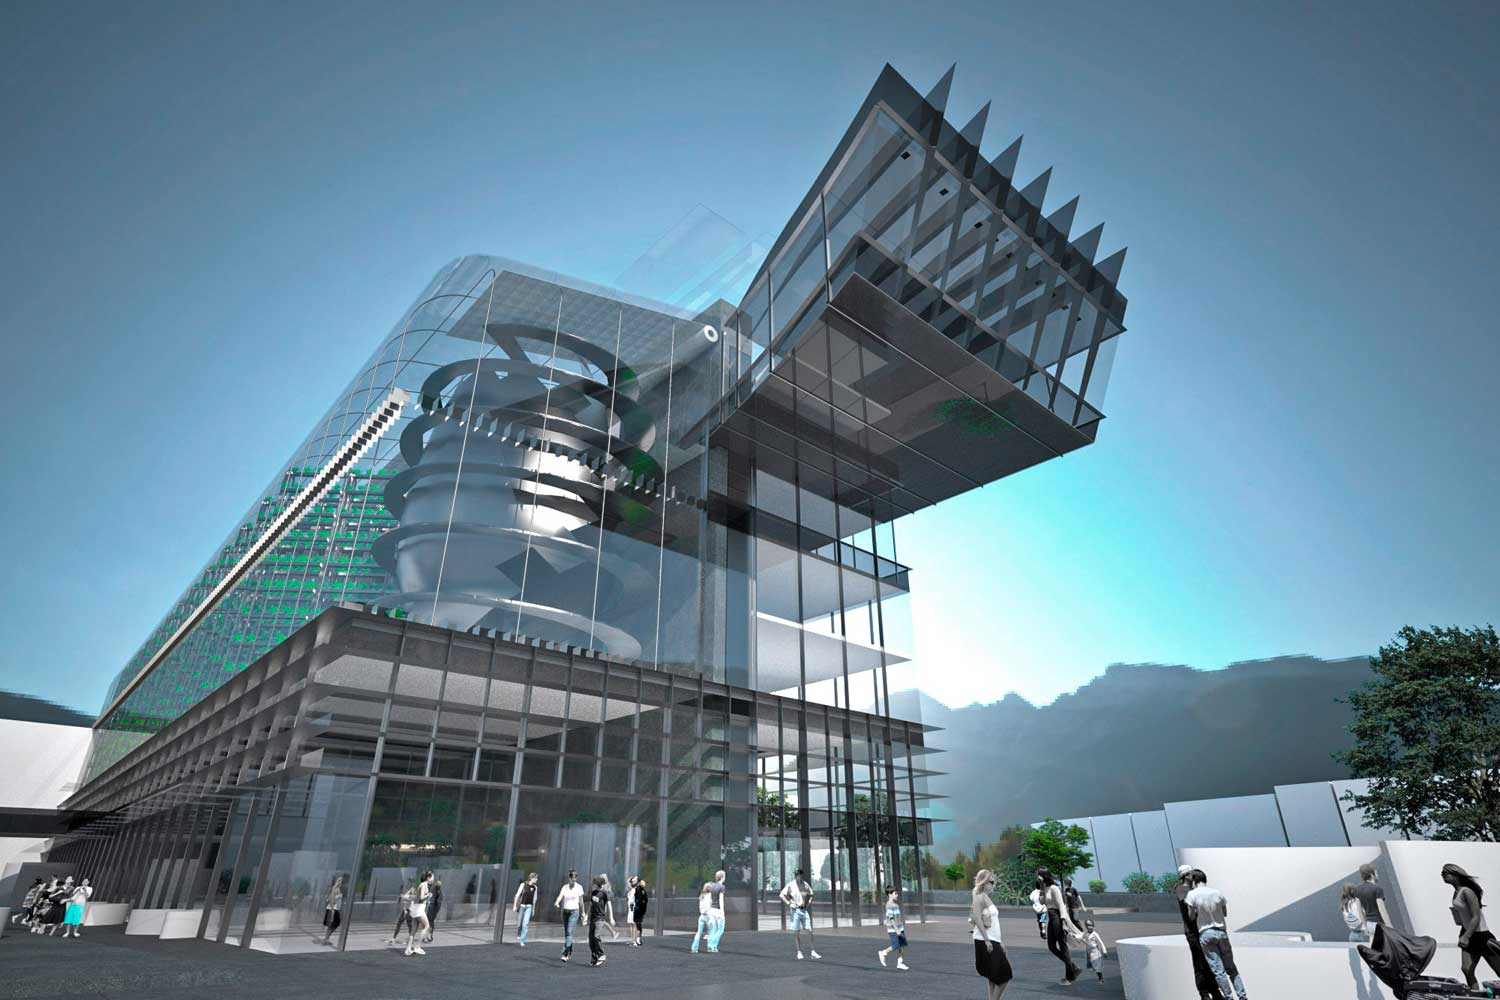 Geplante vertikale Farm Innsbruck, Quelle: vertical farm Institute